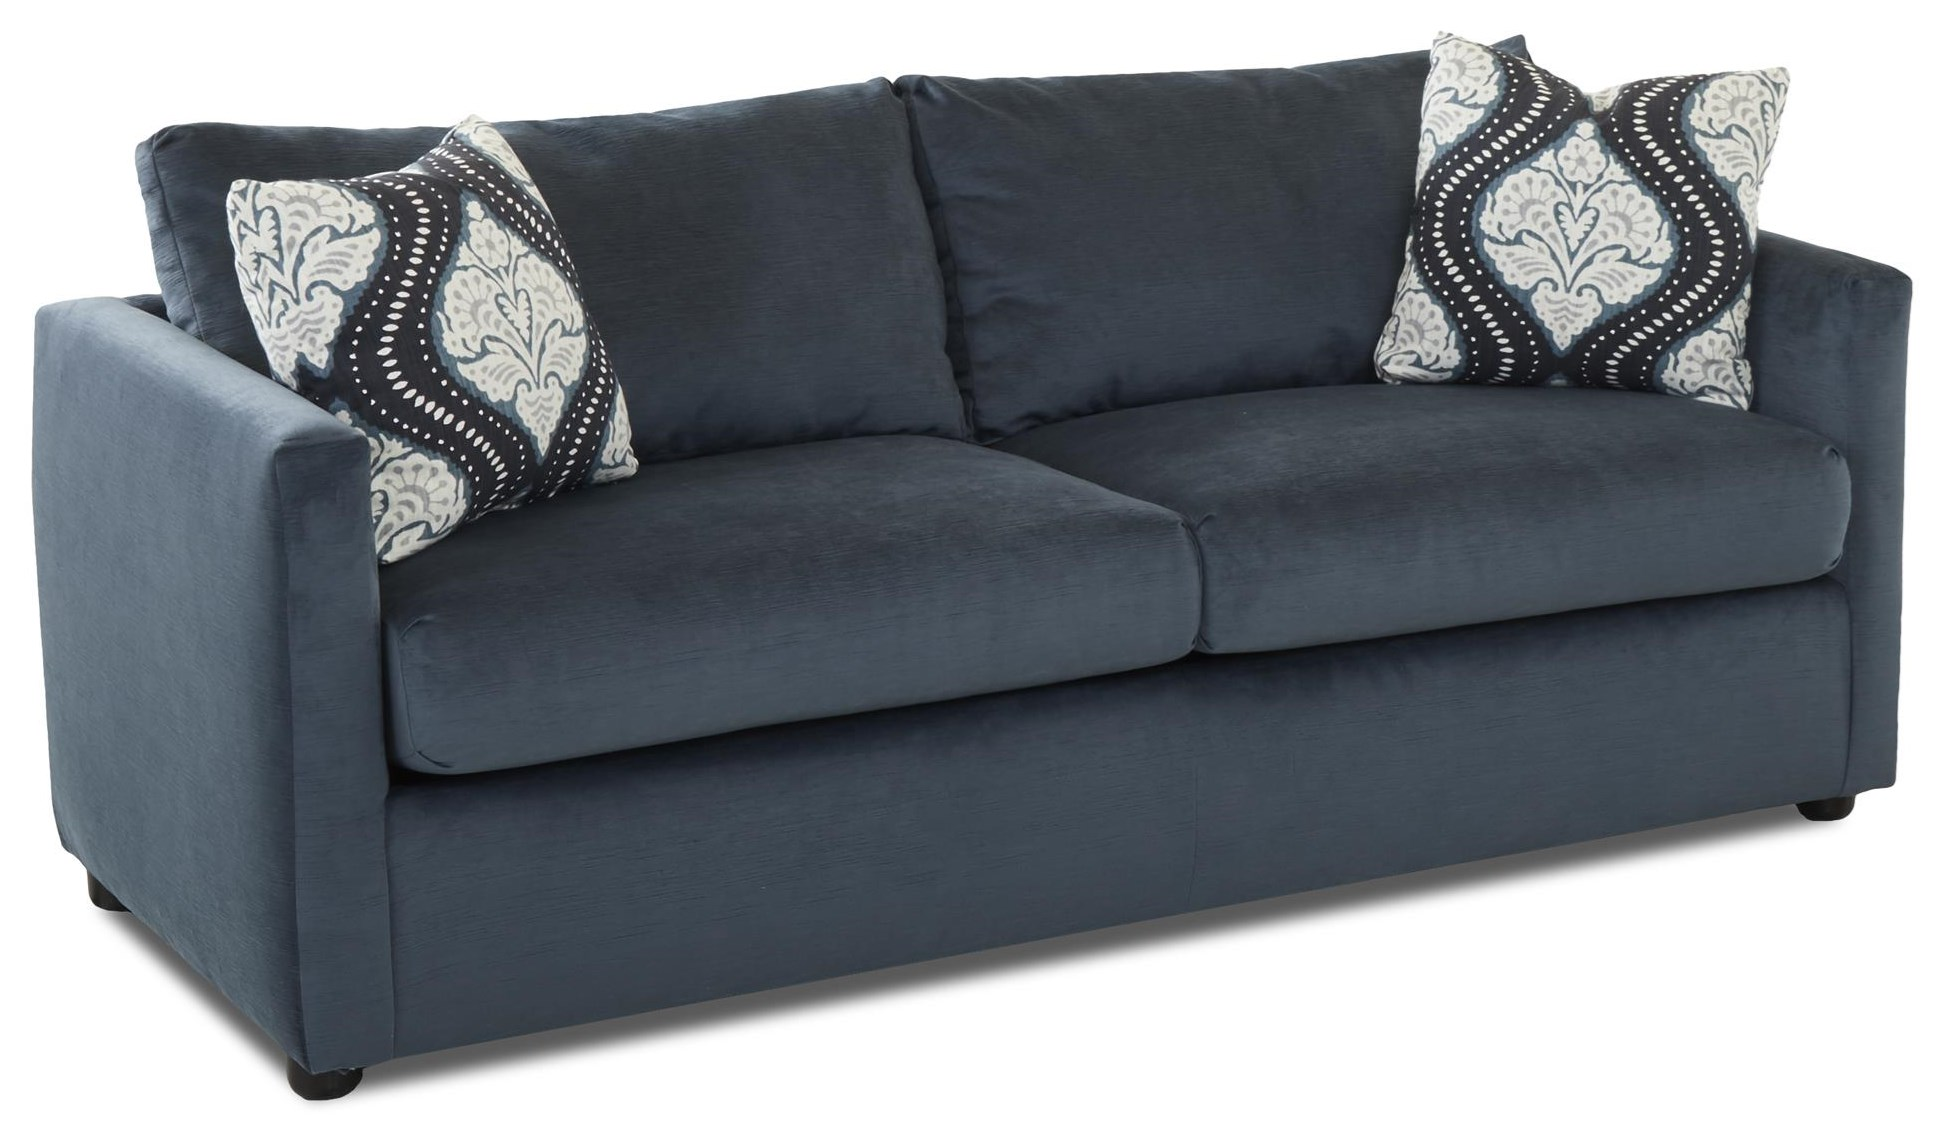 Jacobs Queen Sleeper Sofa by Klaussner at Johnny Janosik